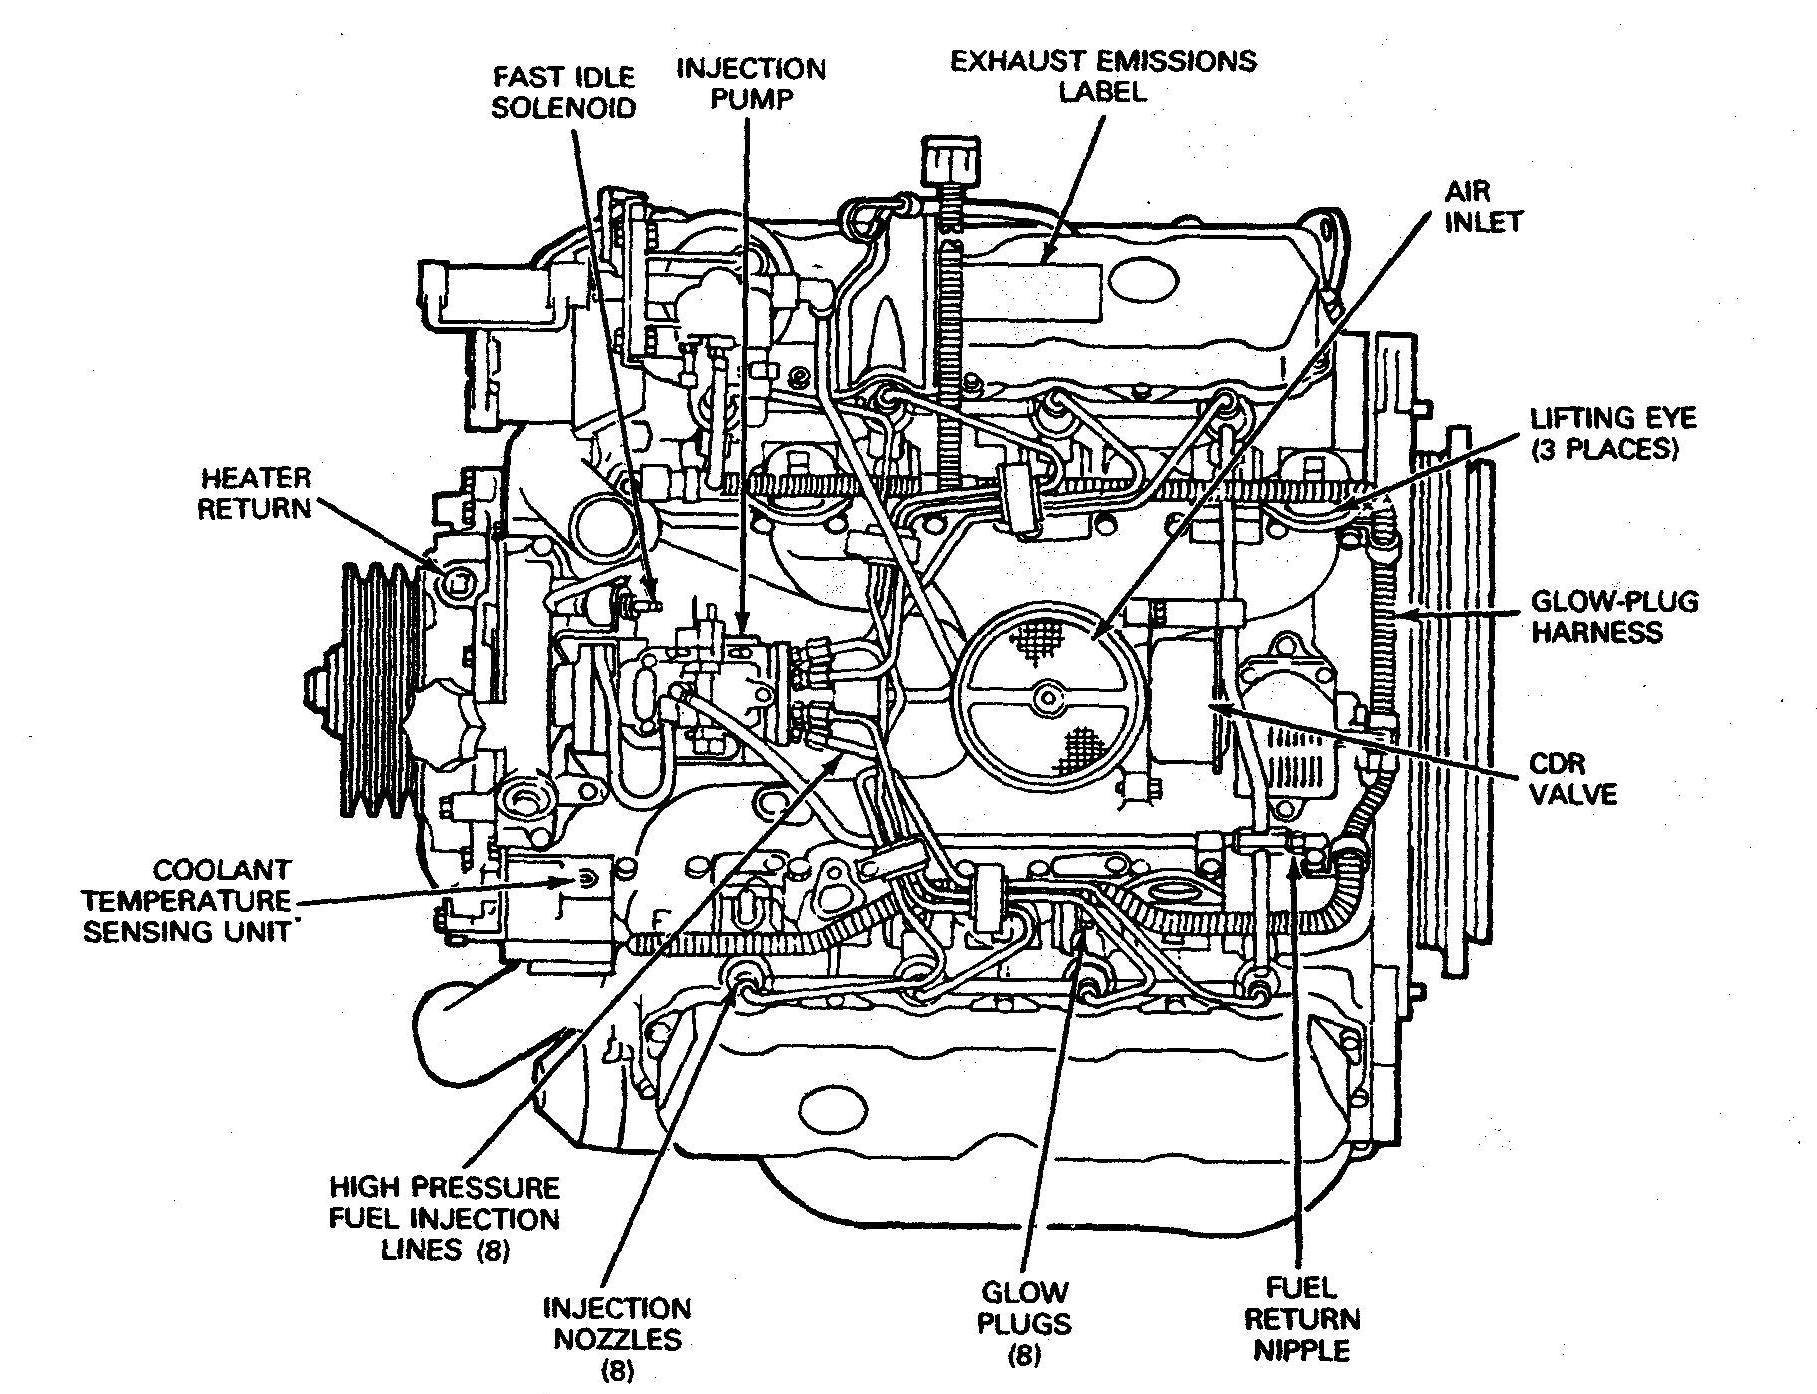 1998 Ford Mustang Engine Diagram 2008 Bmw 328i V6 3 7 Wiring Diagrams Instructions Of